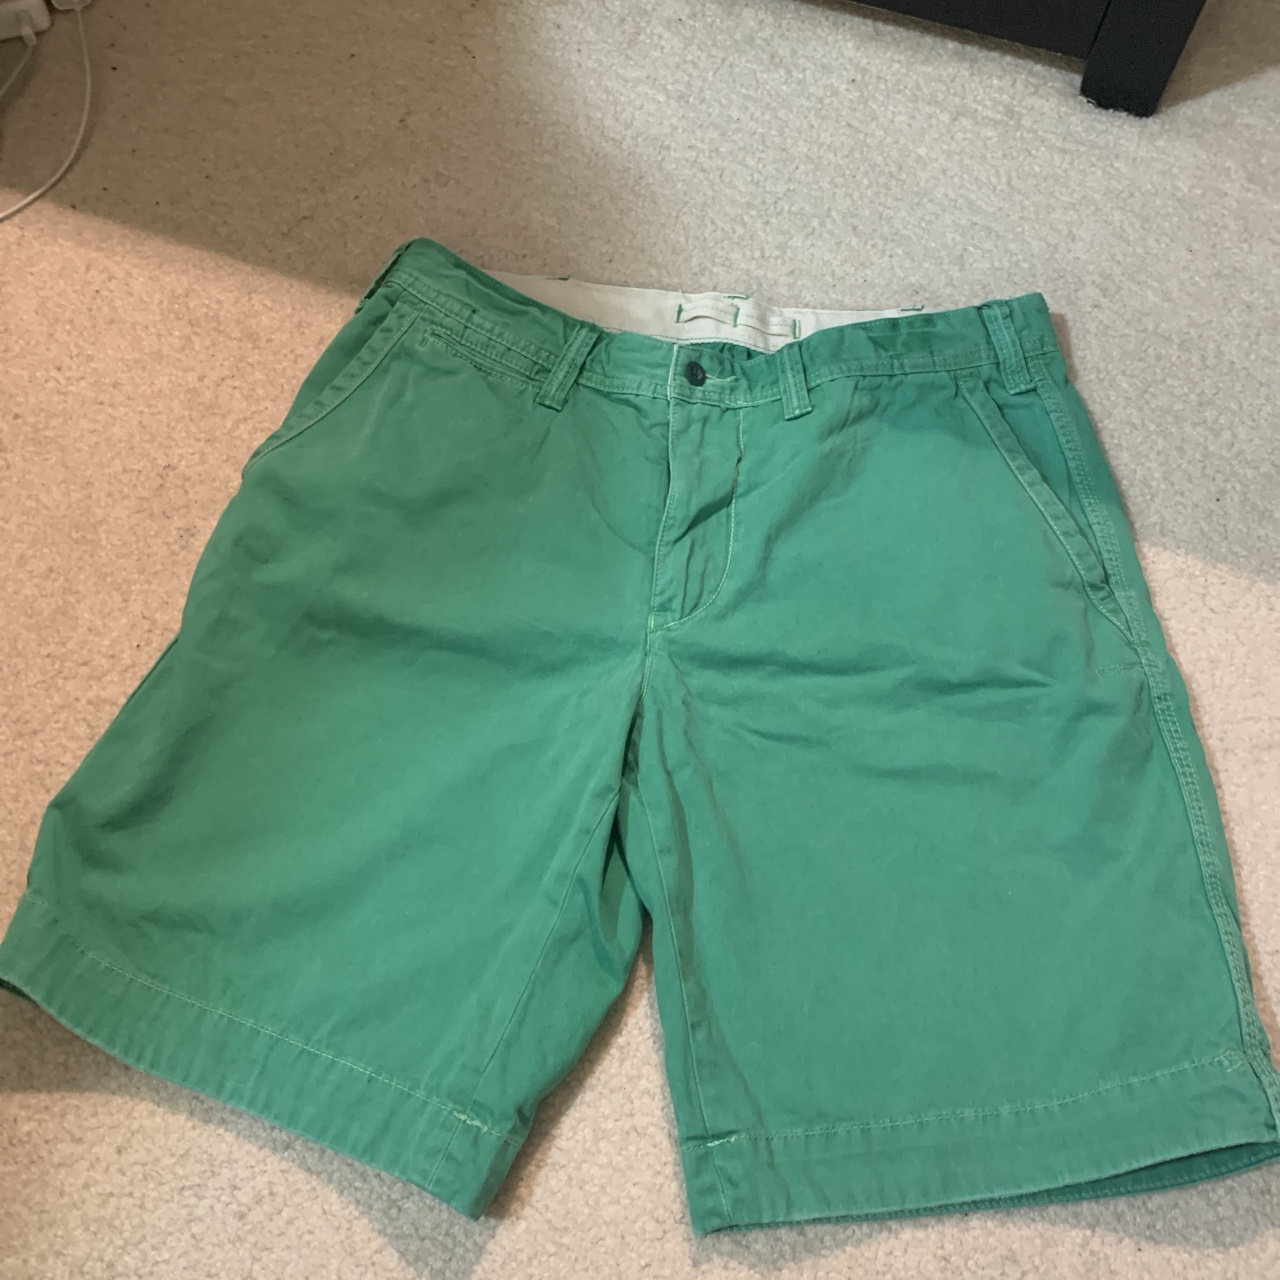 71614408dc Men's polo Ralph Lauren shorts. Size 33 #polo... - Depop